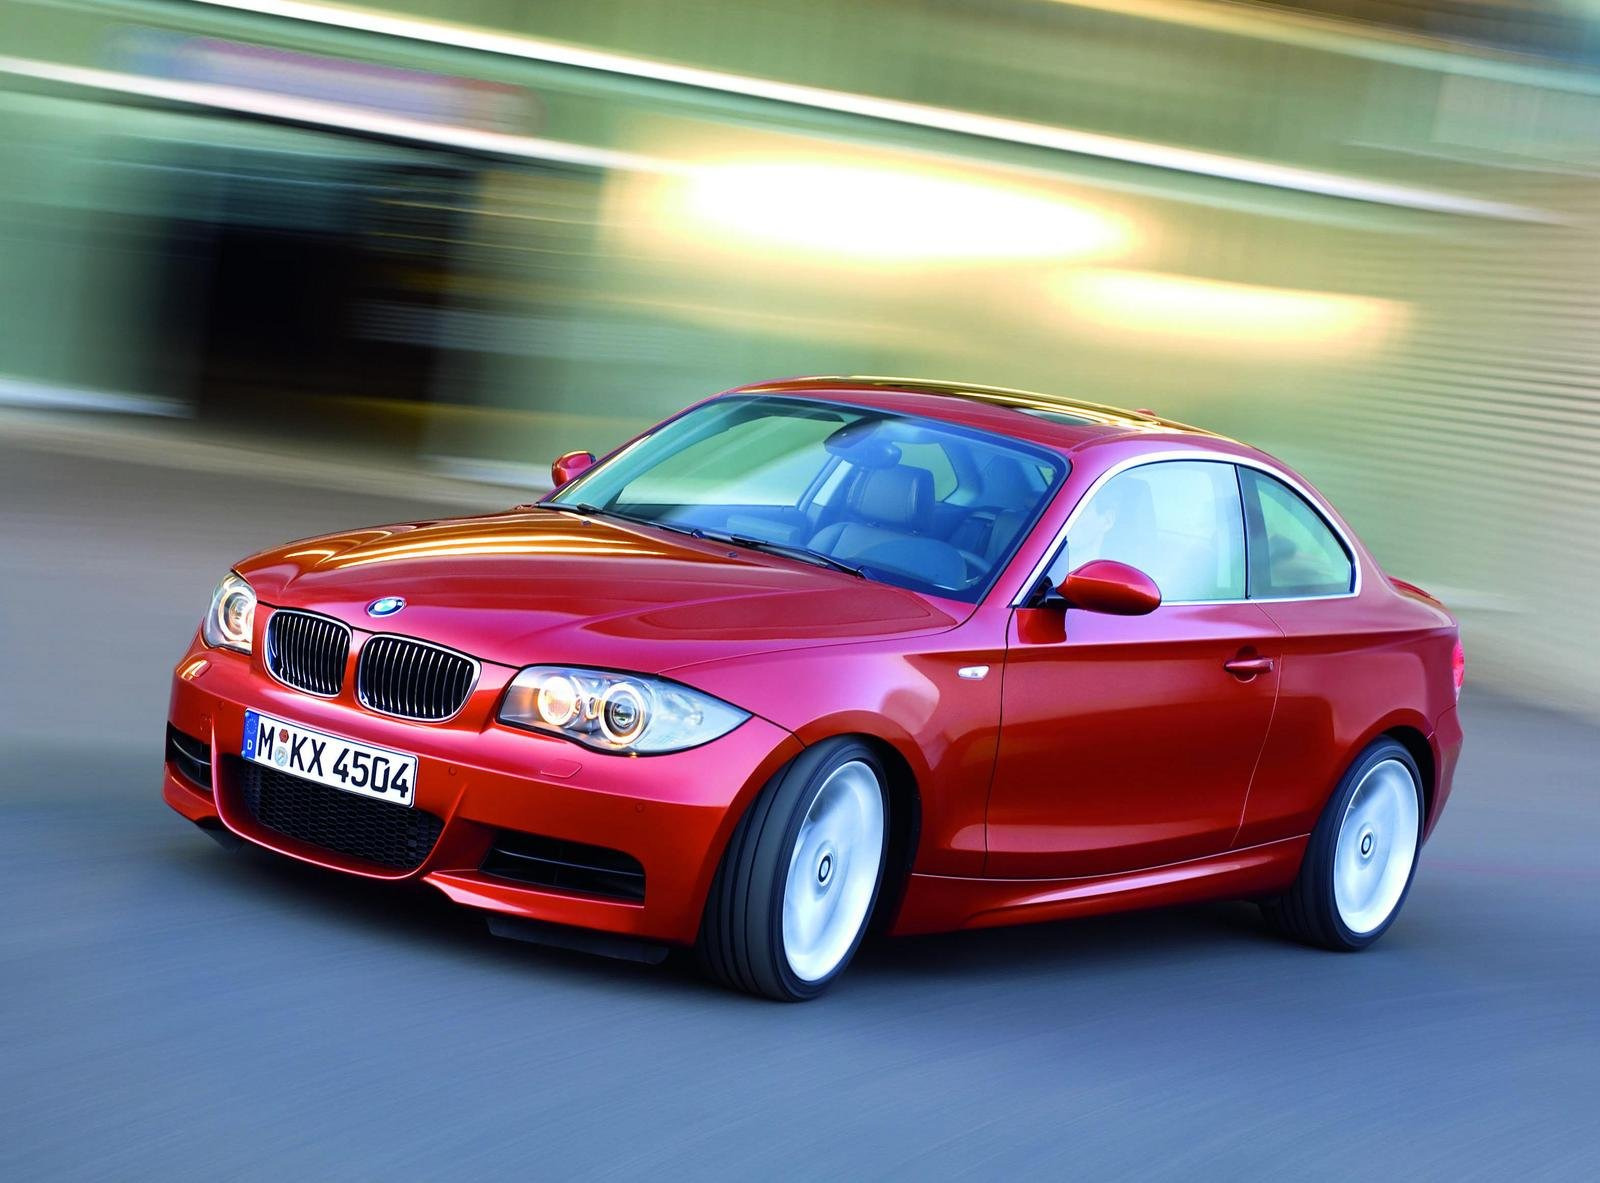 Used Bmw 3 Series Cars For Sale Cheap Used Bmw 3 Series